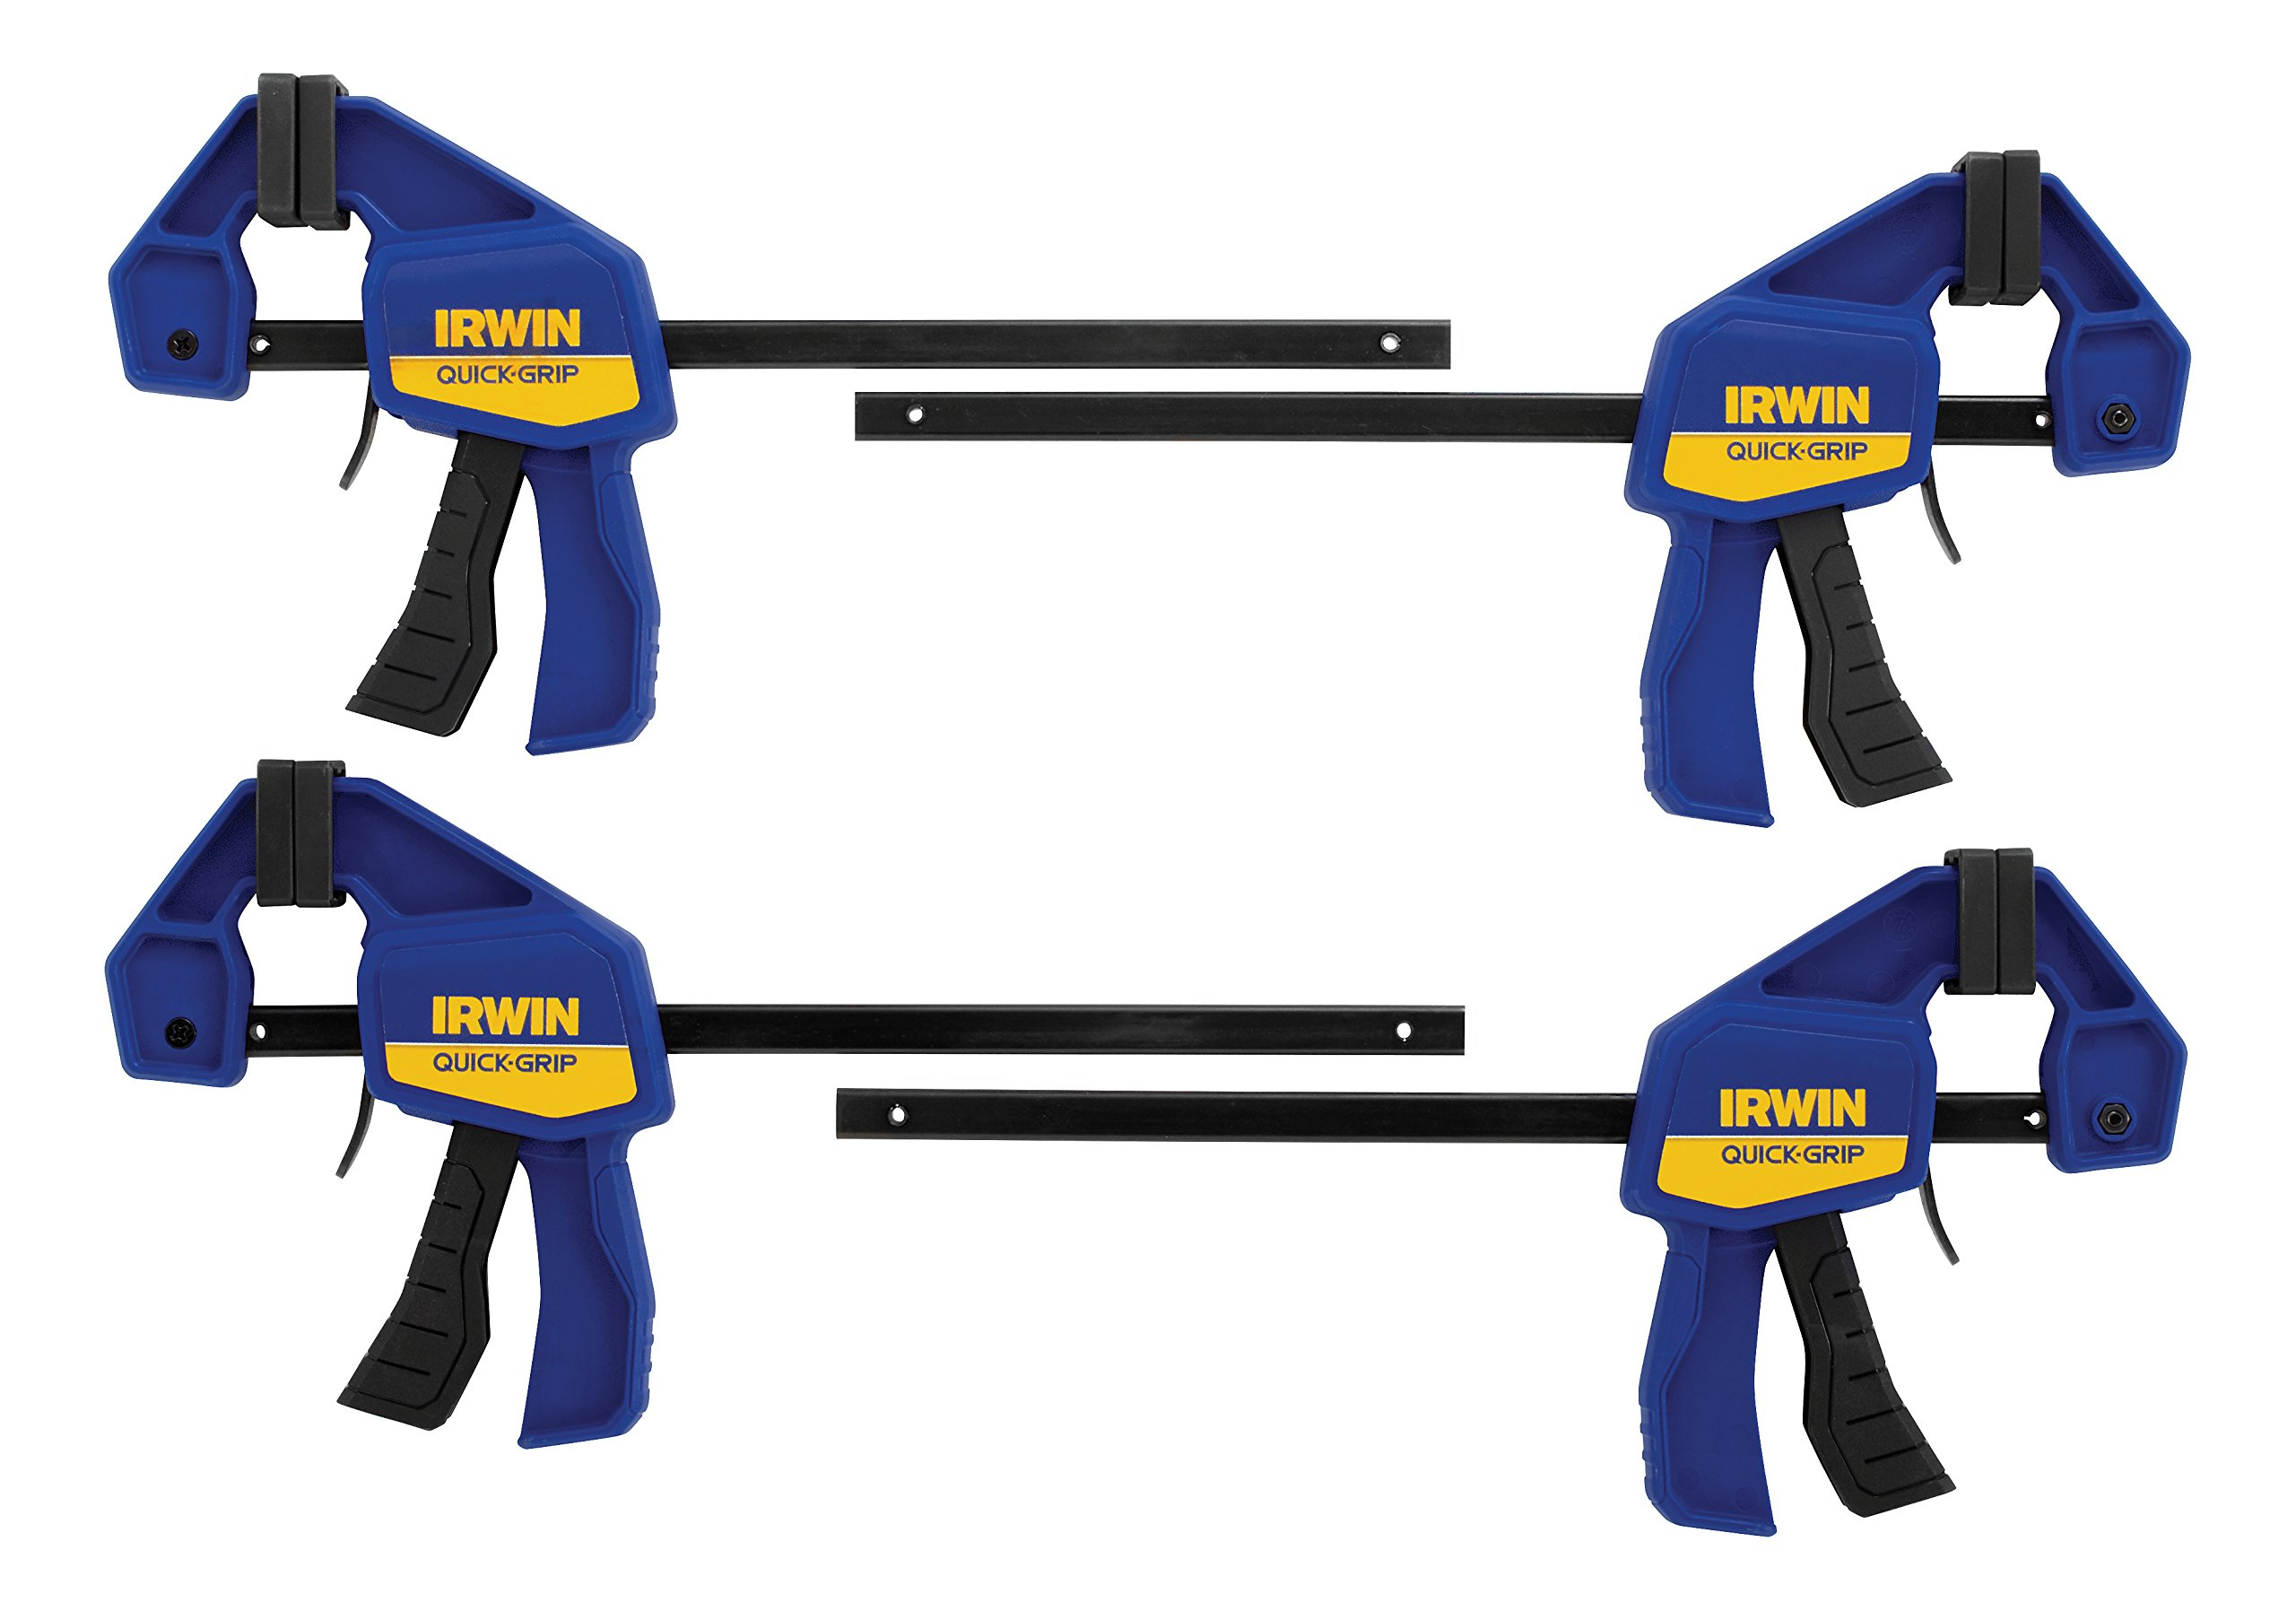 IRWIN QUICK-GRIP Clamps, One-Handed, Mini Bar, 6-Inch, 4-Pack (1964758) by IRWIN